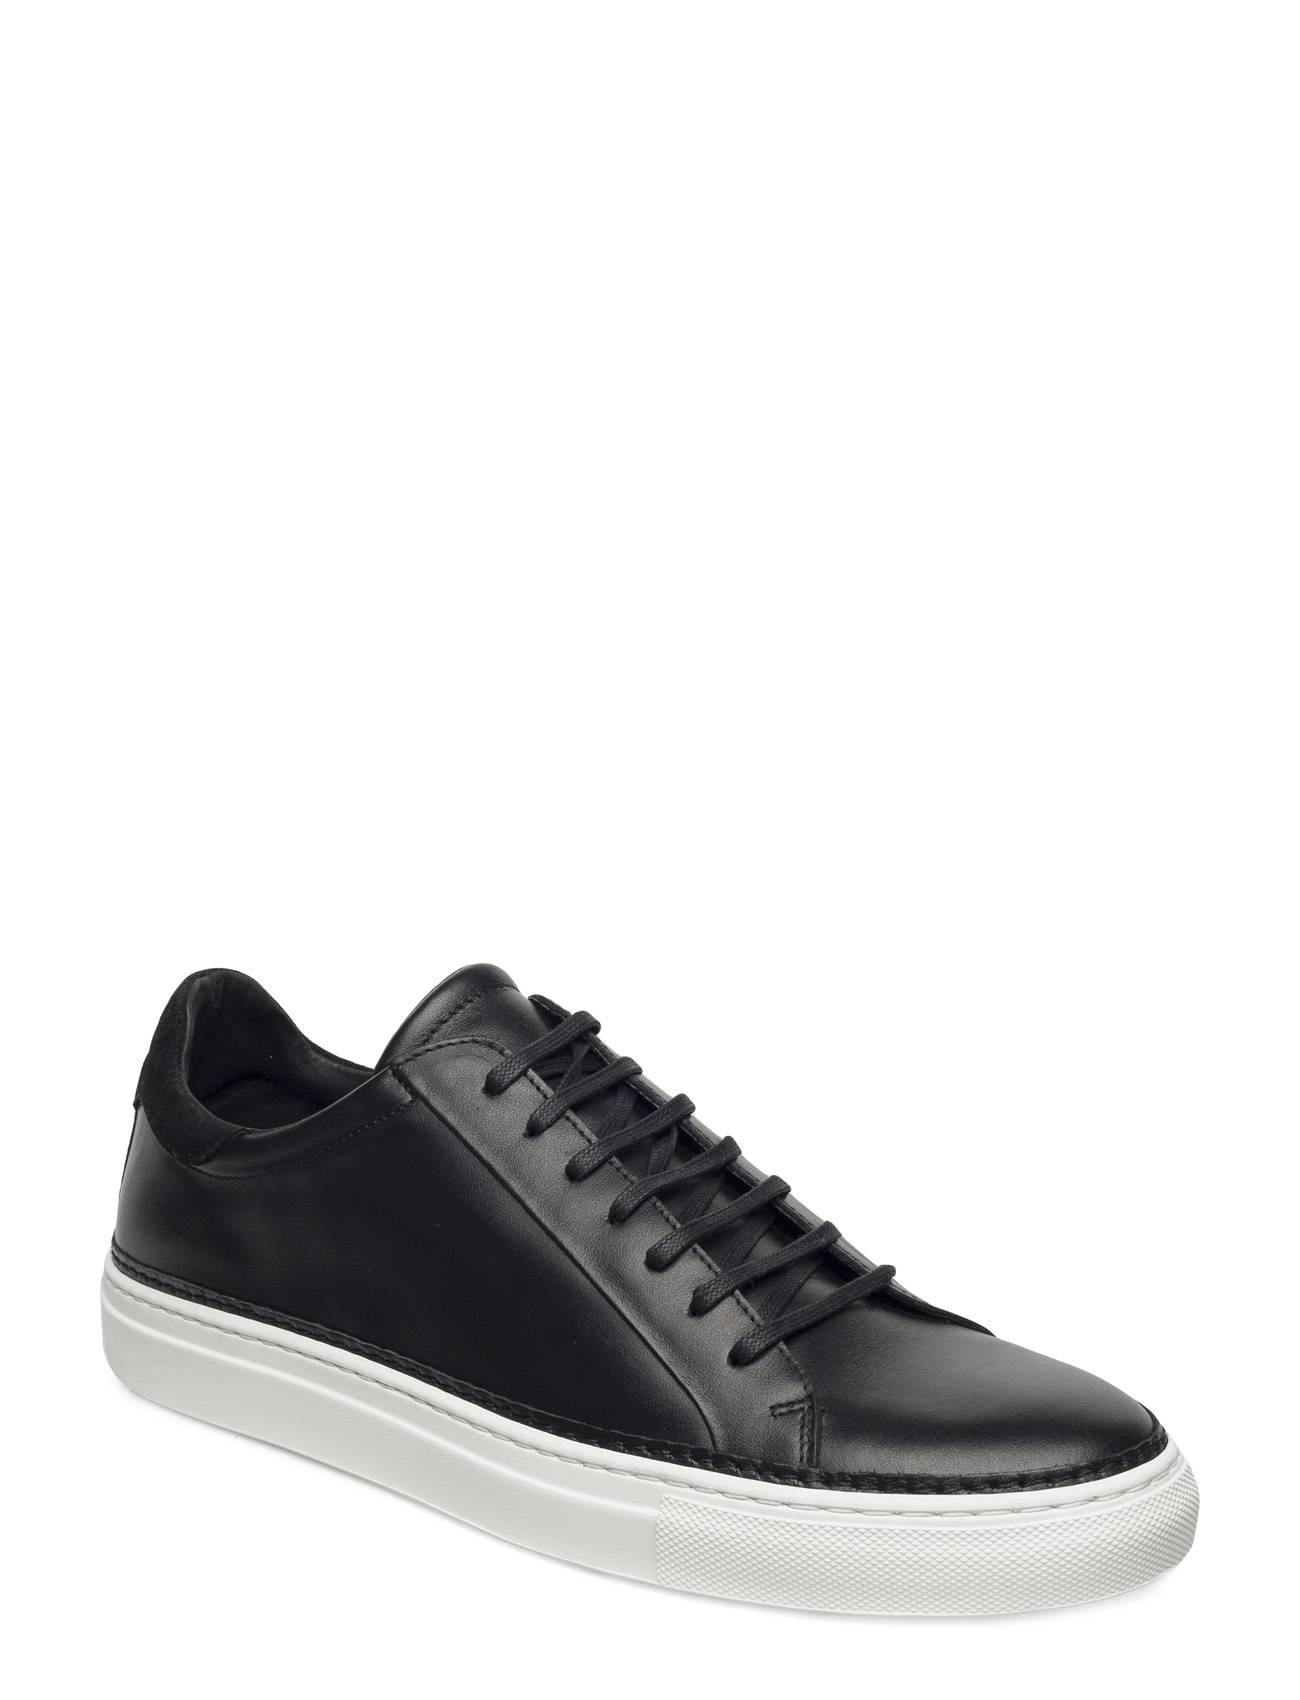 J. Lindeberg Sneaker Combo Leather